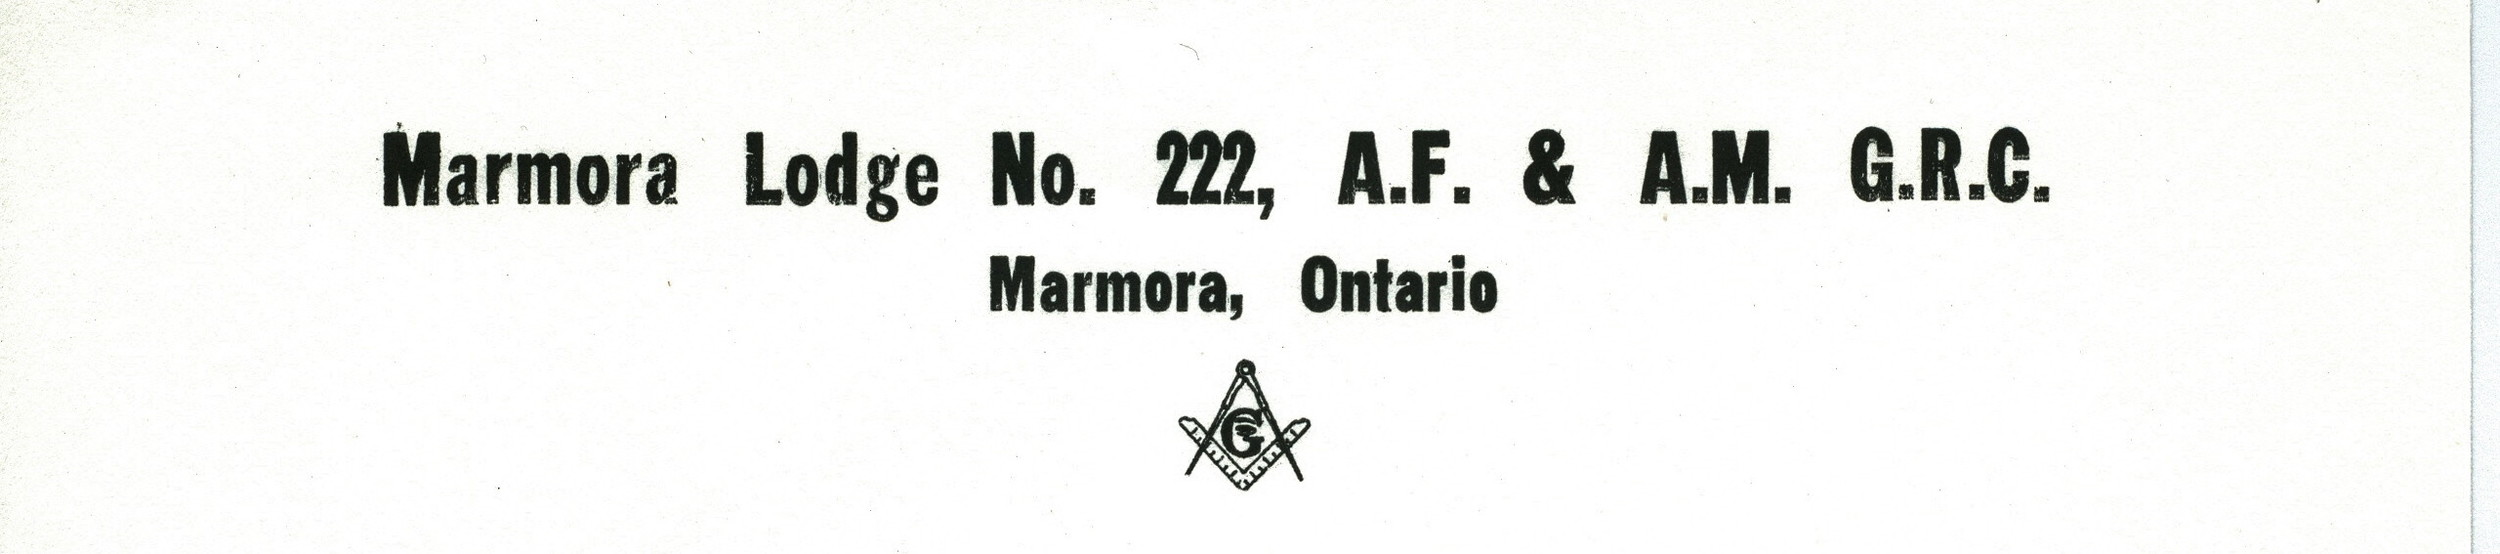 Ancient Free and Accepted Masons. Grand Registrar Canada